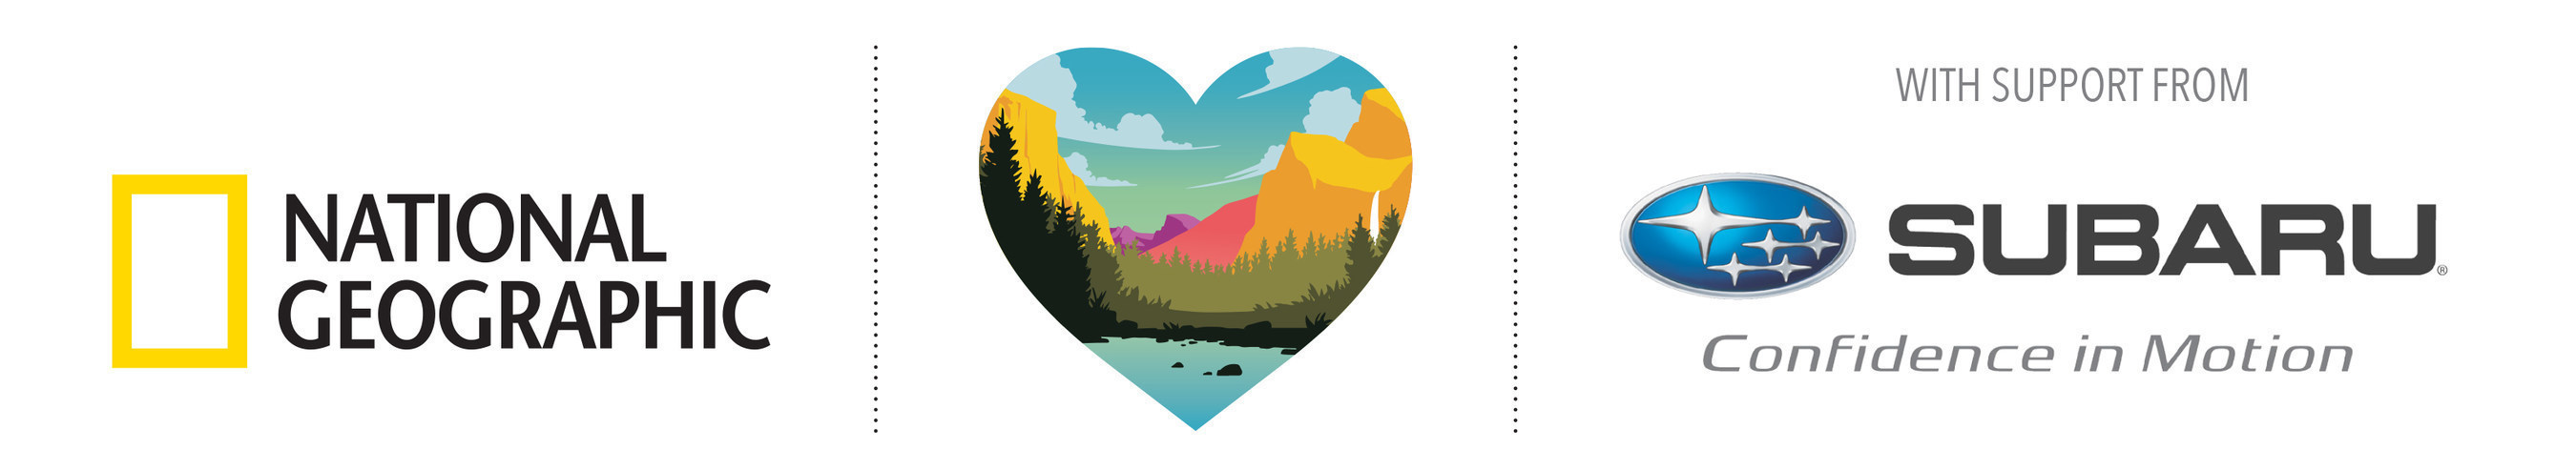 """To celebrate the 100th anniversary of the founding of the National Park Service in 2016, the National Geographic Society, with support from Subaru of America, Inc., has launched the """"Find Your Park, Love Your Park"""" educational initiative."""